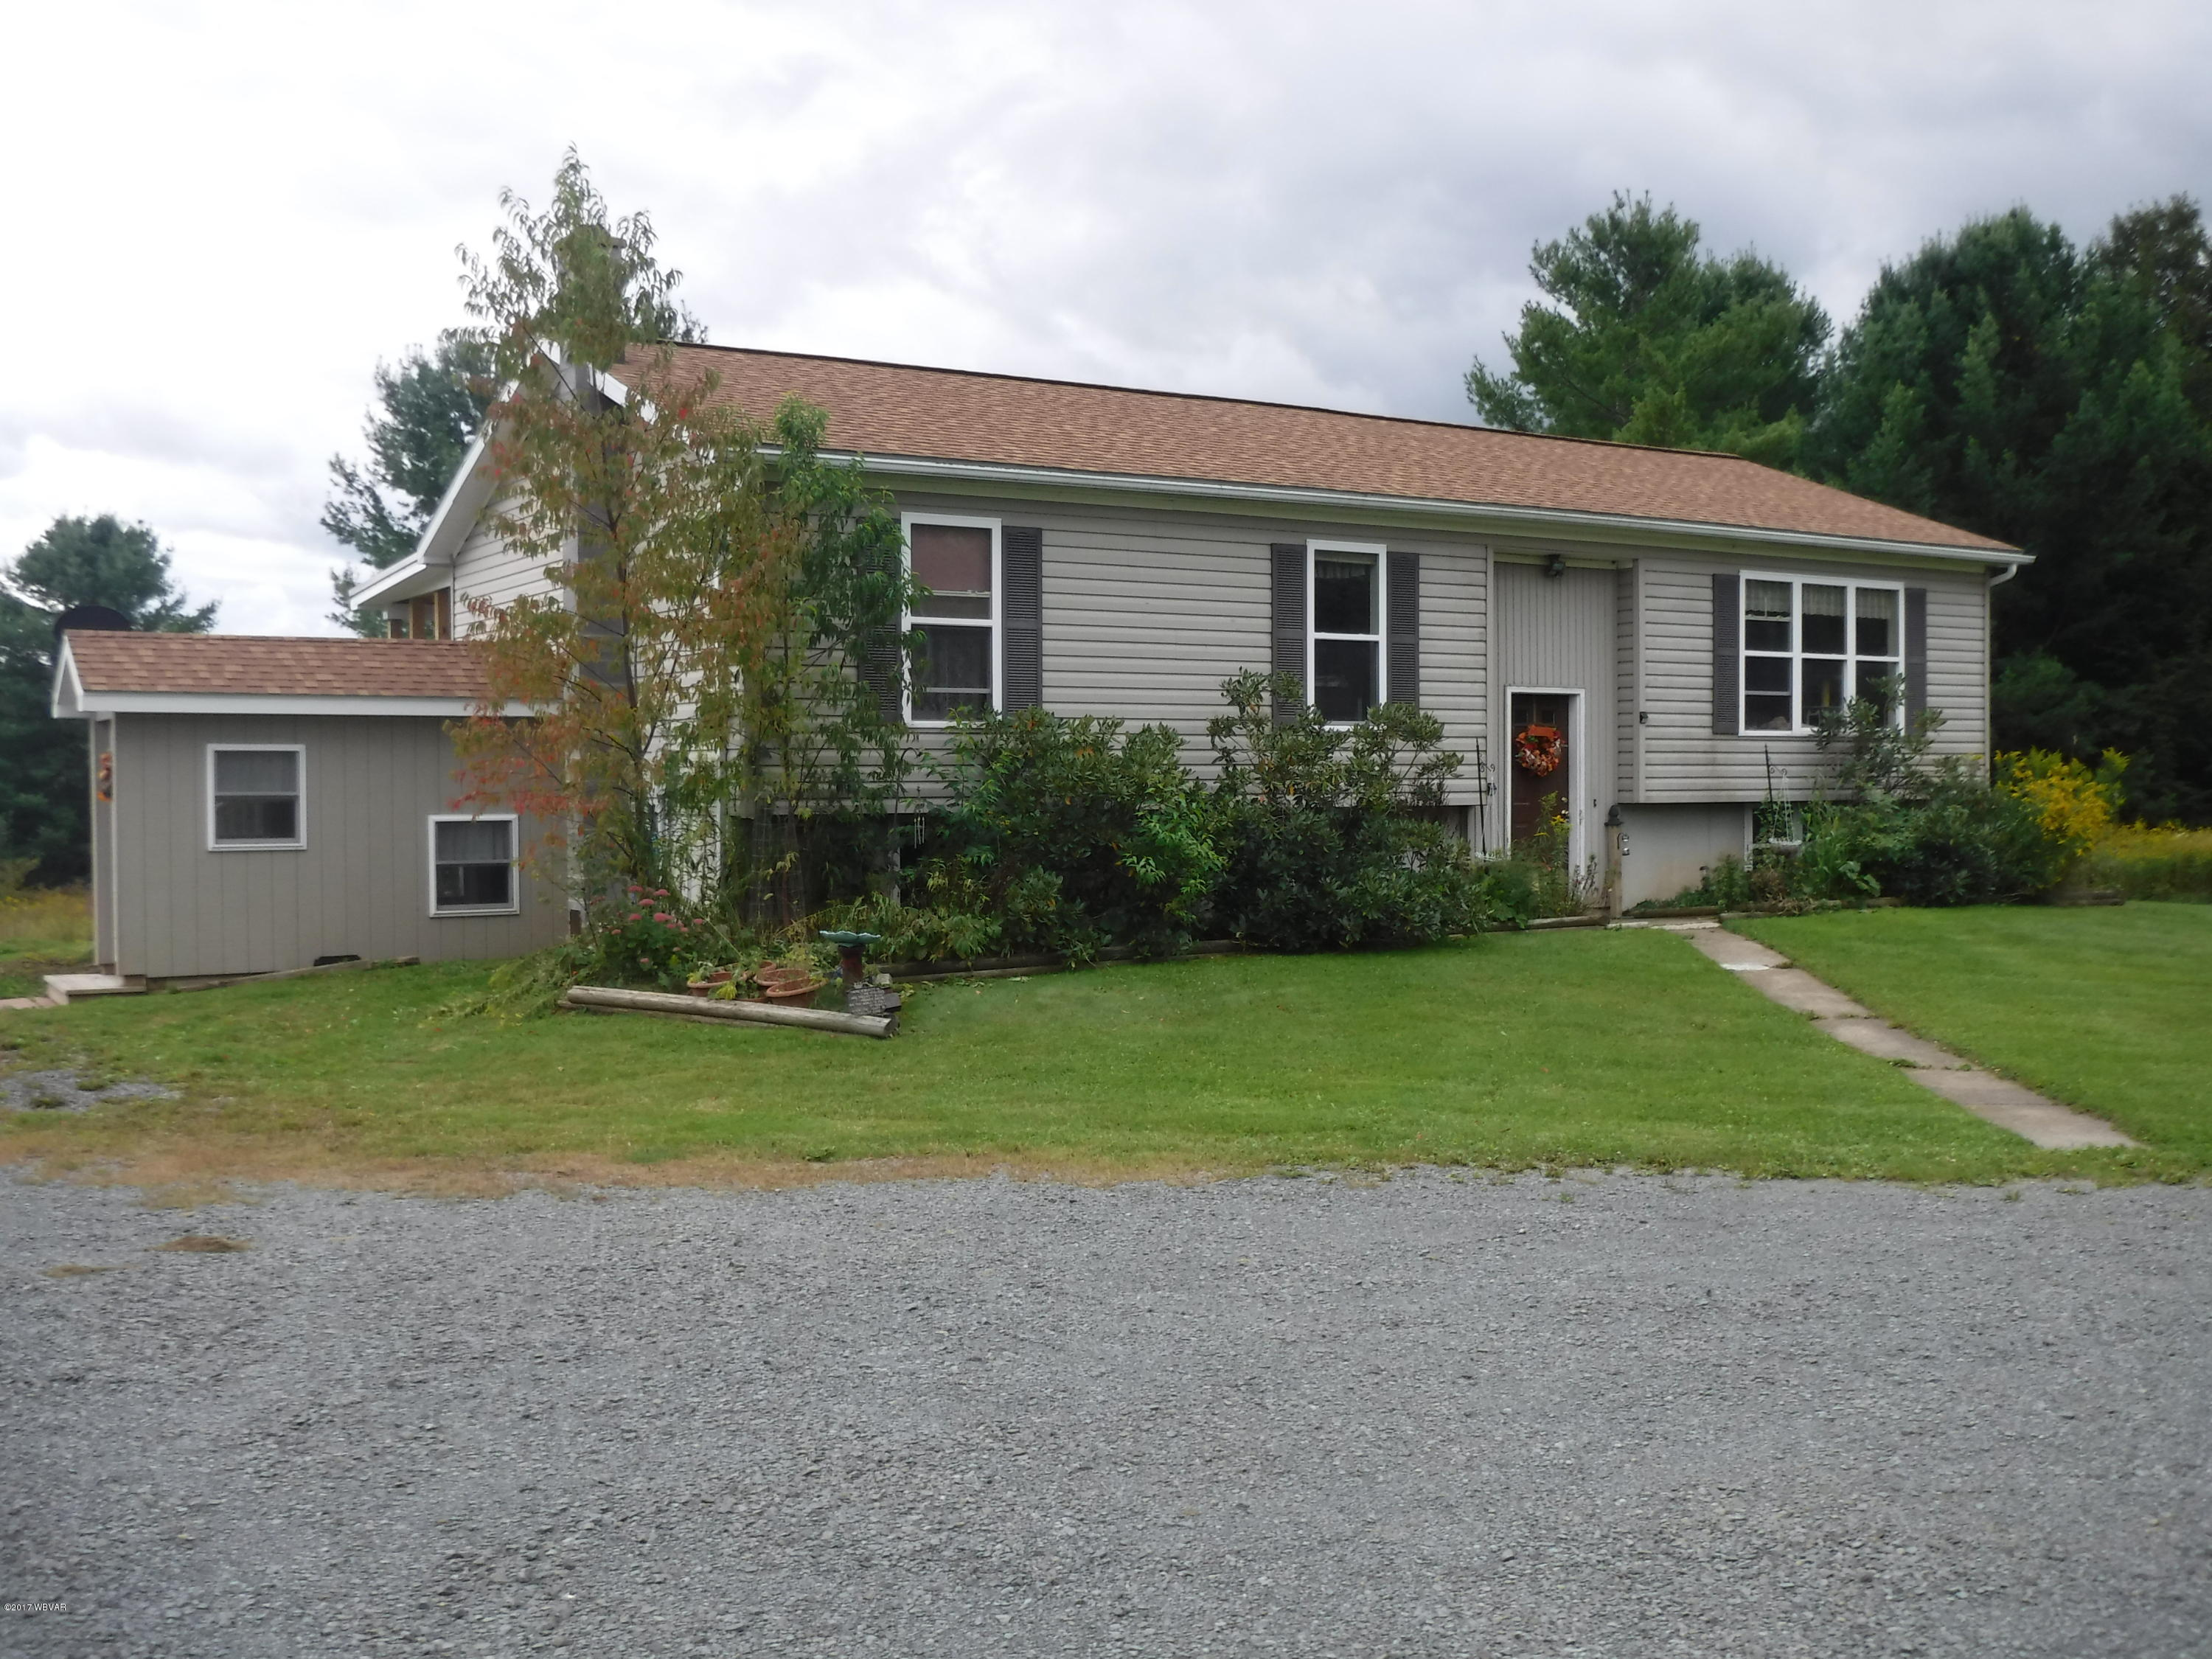 836 ROUTE 4007 ROAD,Forksville,PA 18616,4 Bedrooms Bedrooms,1 BathroomBathrooms,Residential,ROUTE 4007,WB-81986